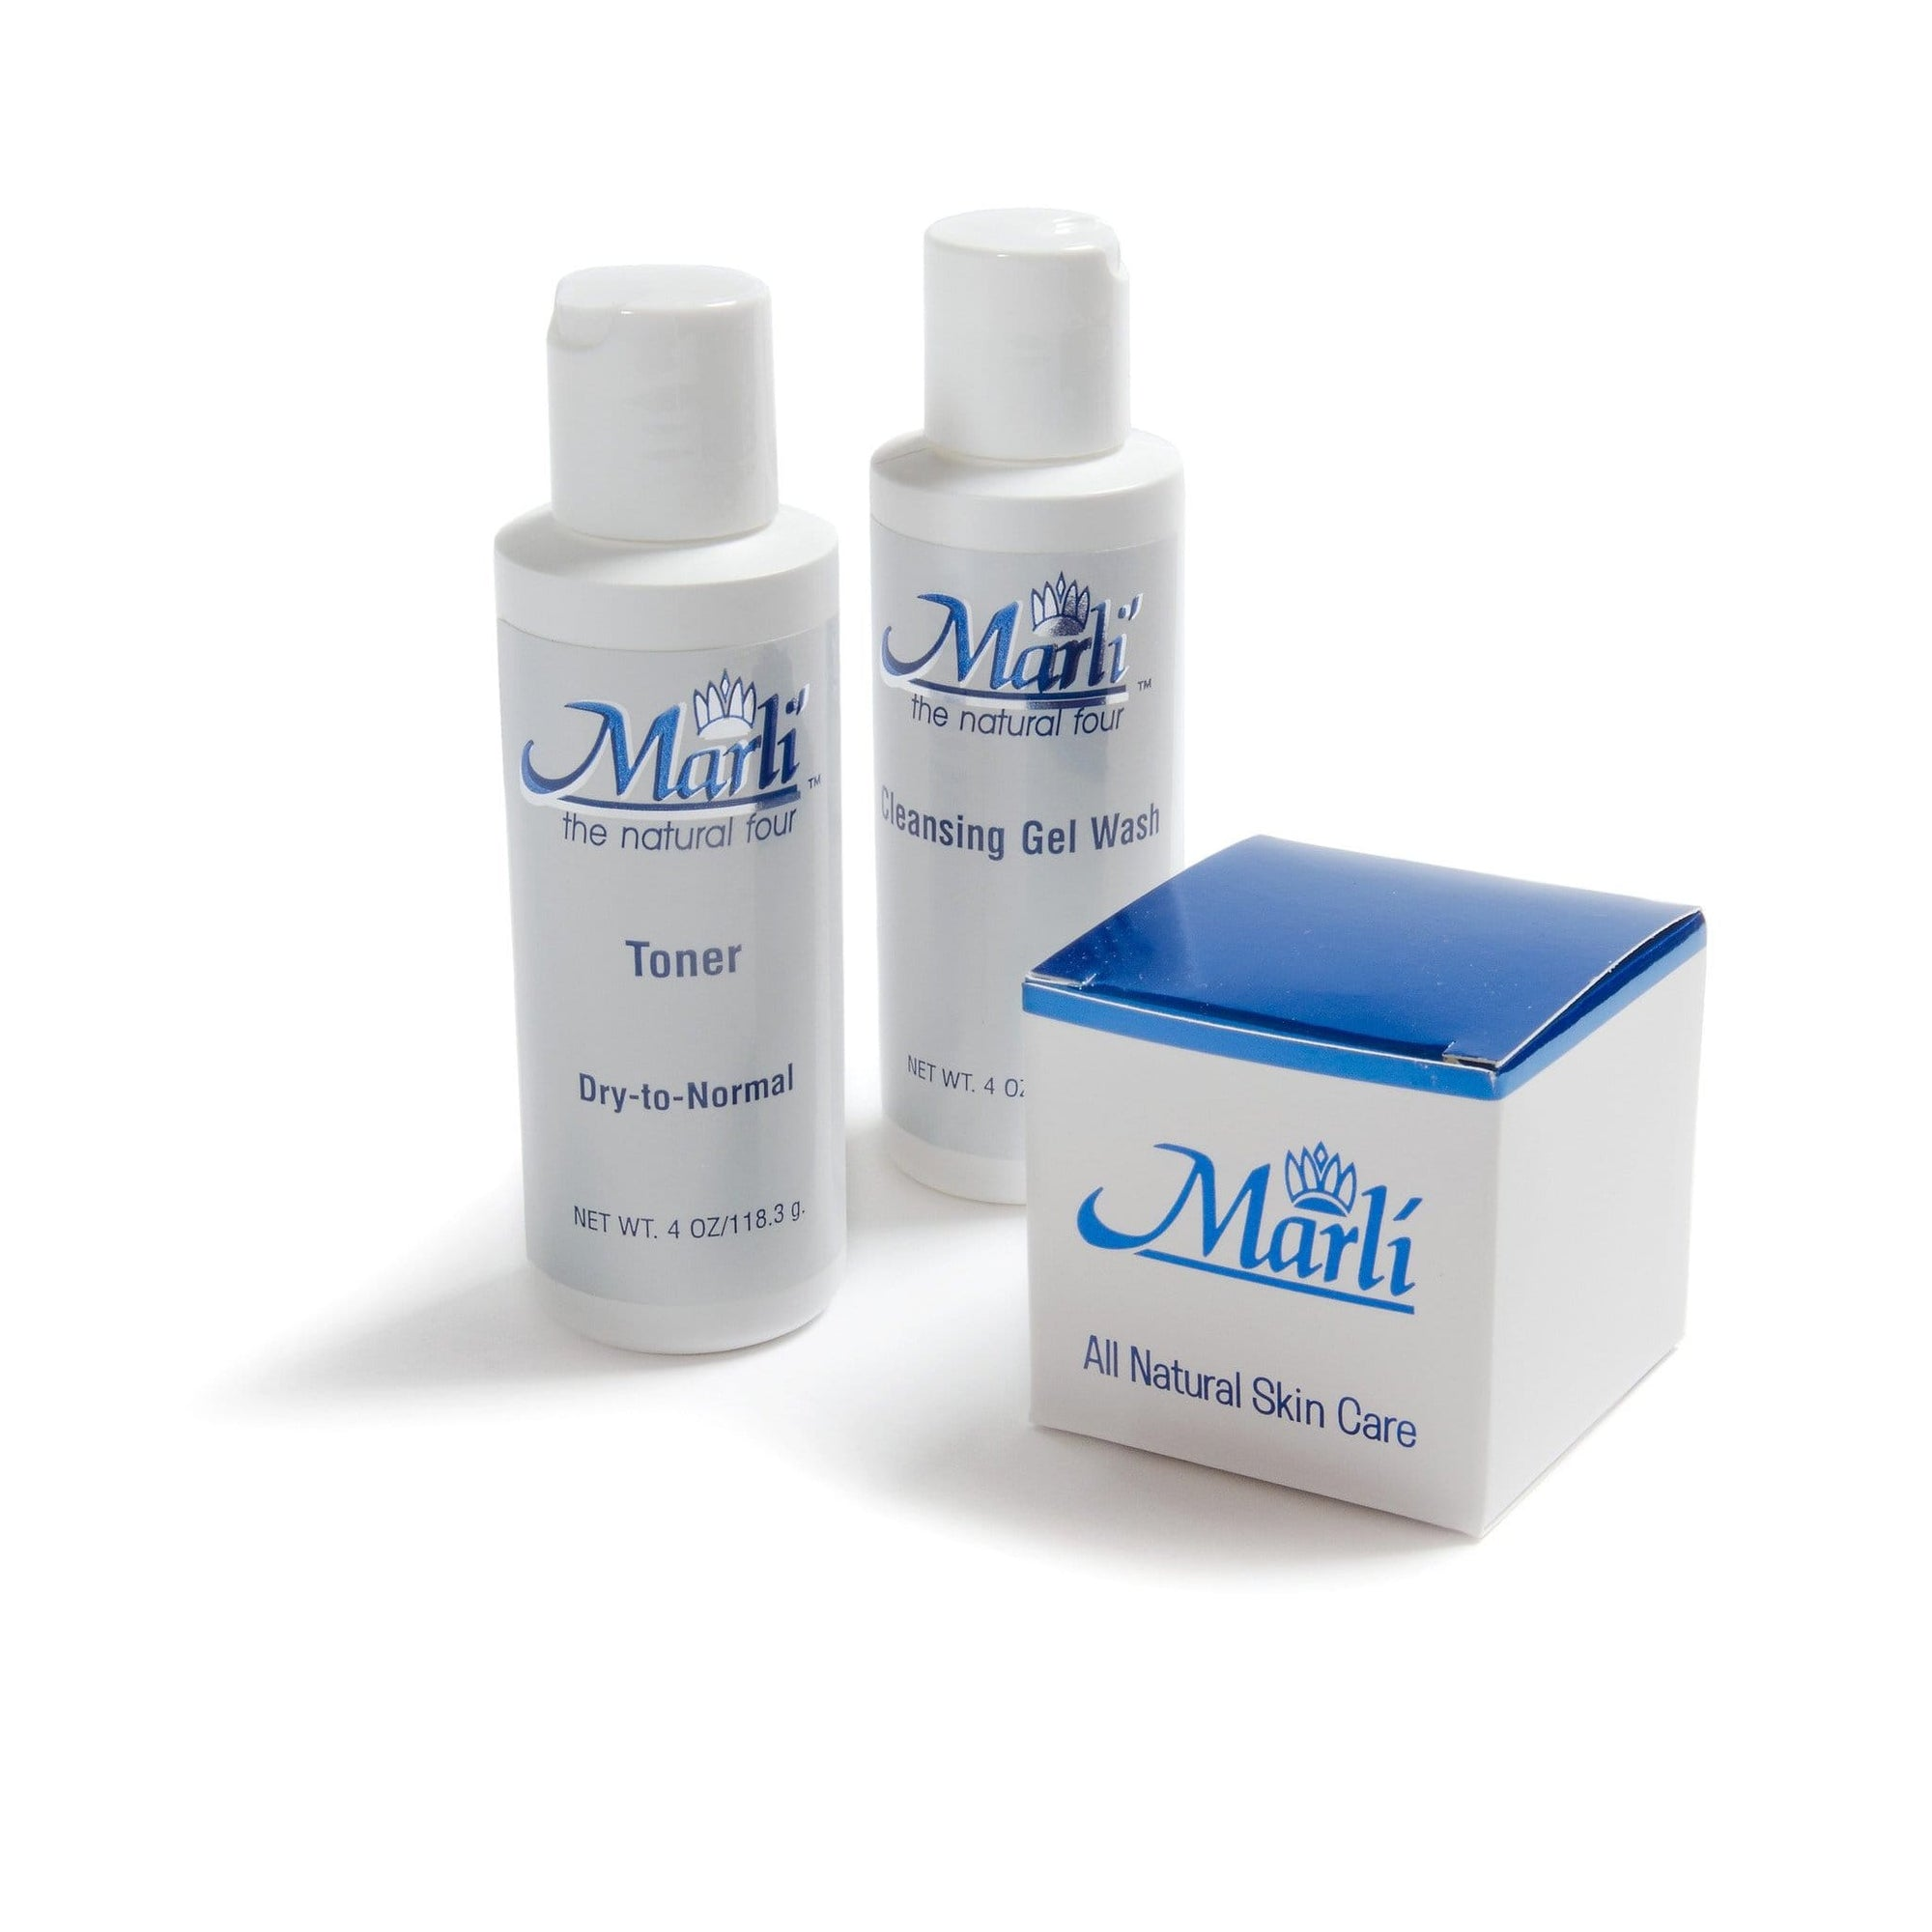 Marli Skin Care Skin Care Rapid Wrinkle Erase Marli Complete Skin Care Kit (With Rapid Wrinkle Erase Cream, Collagen Facial Cleanser Gel, & pH Balancing Toner)